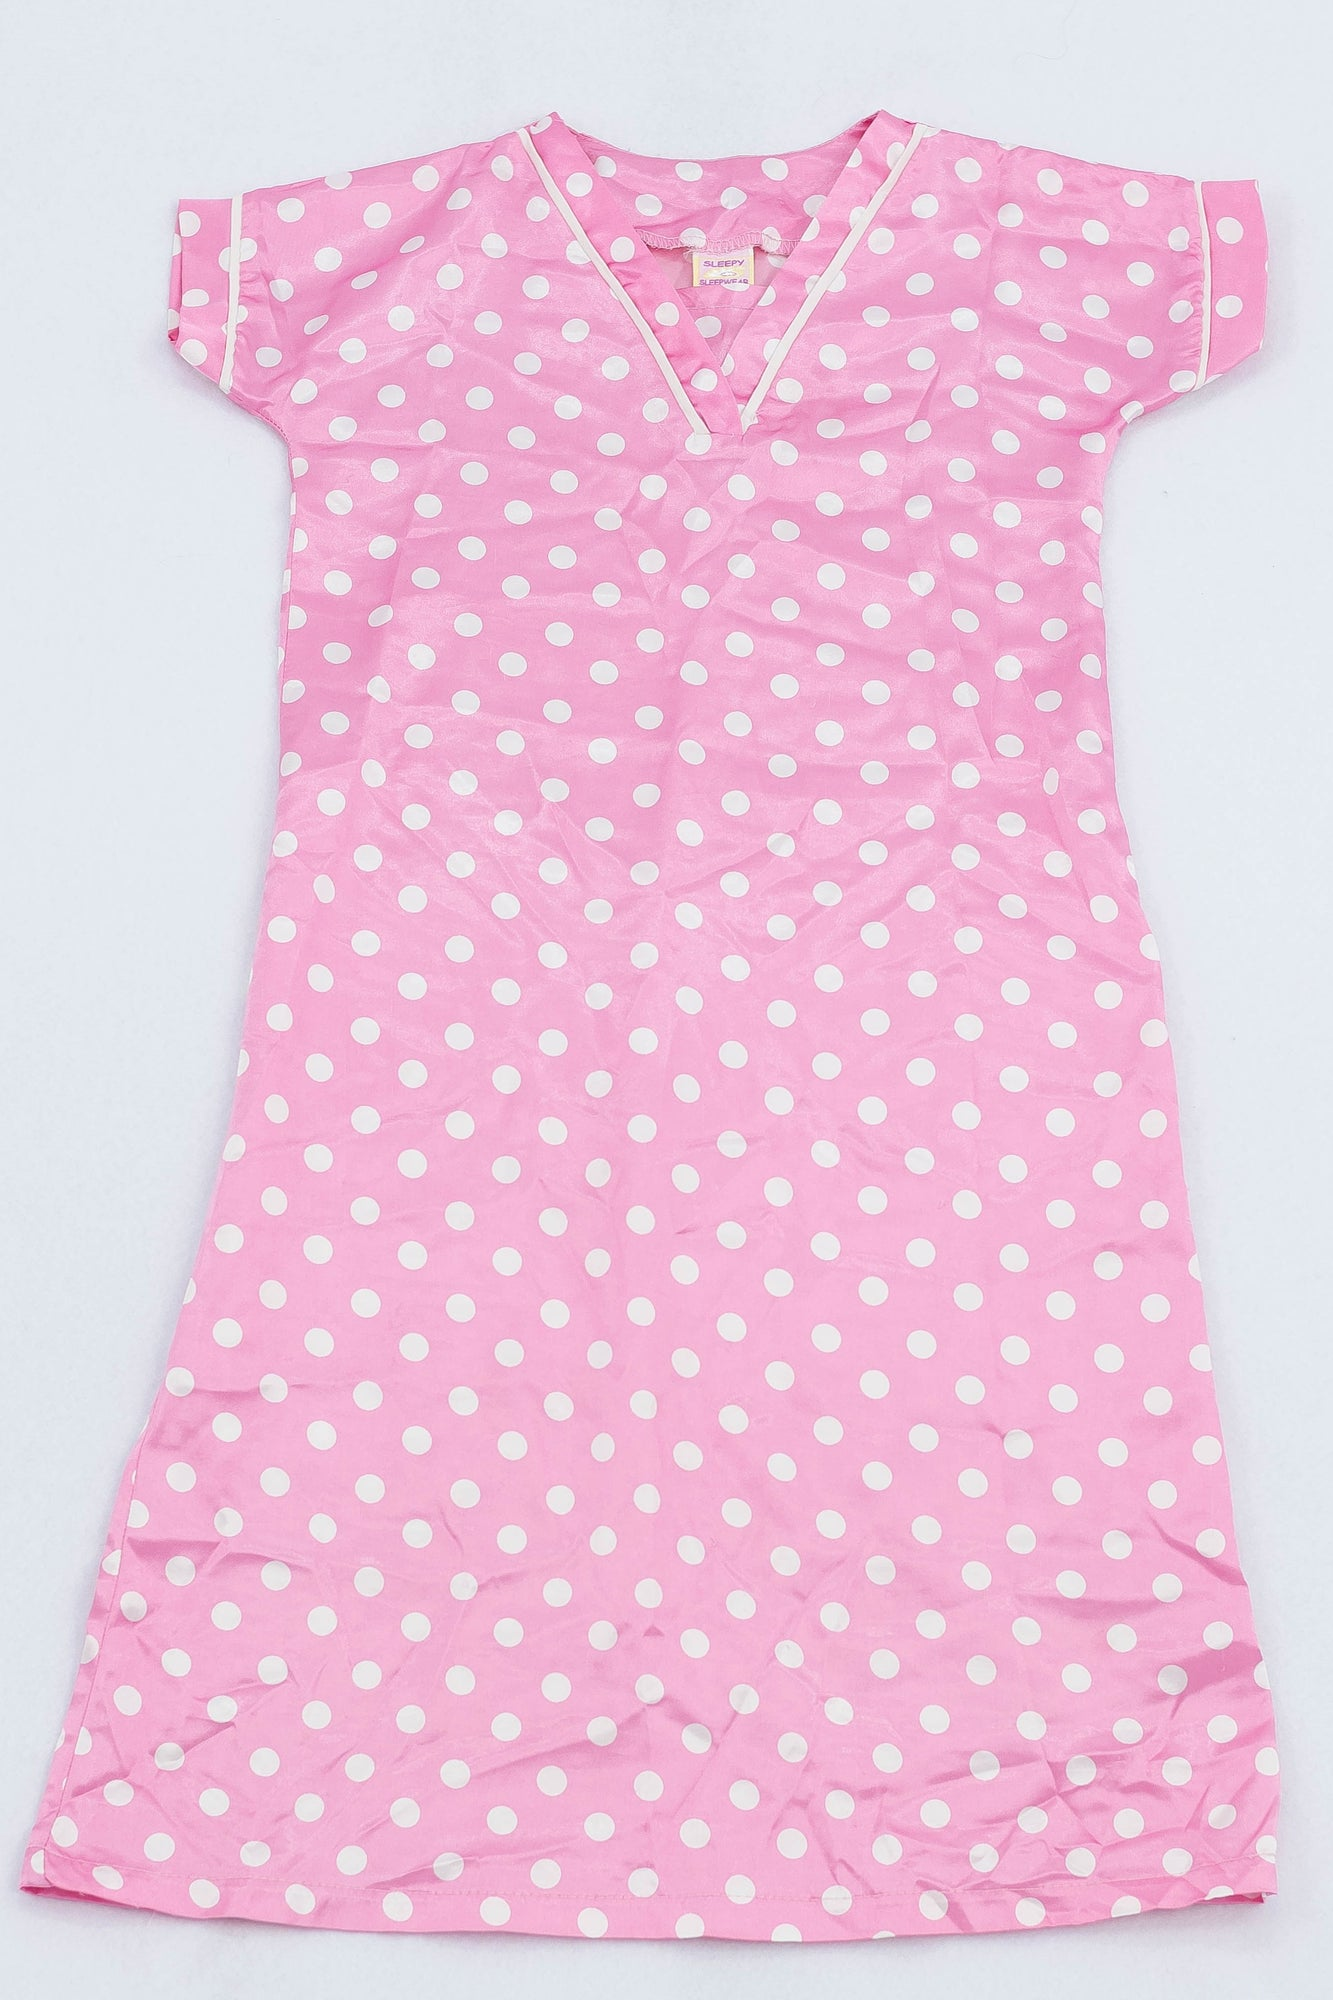 Sleepy Sleepwear Pink Satin Dotty Nighty Girls 3-4 years